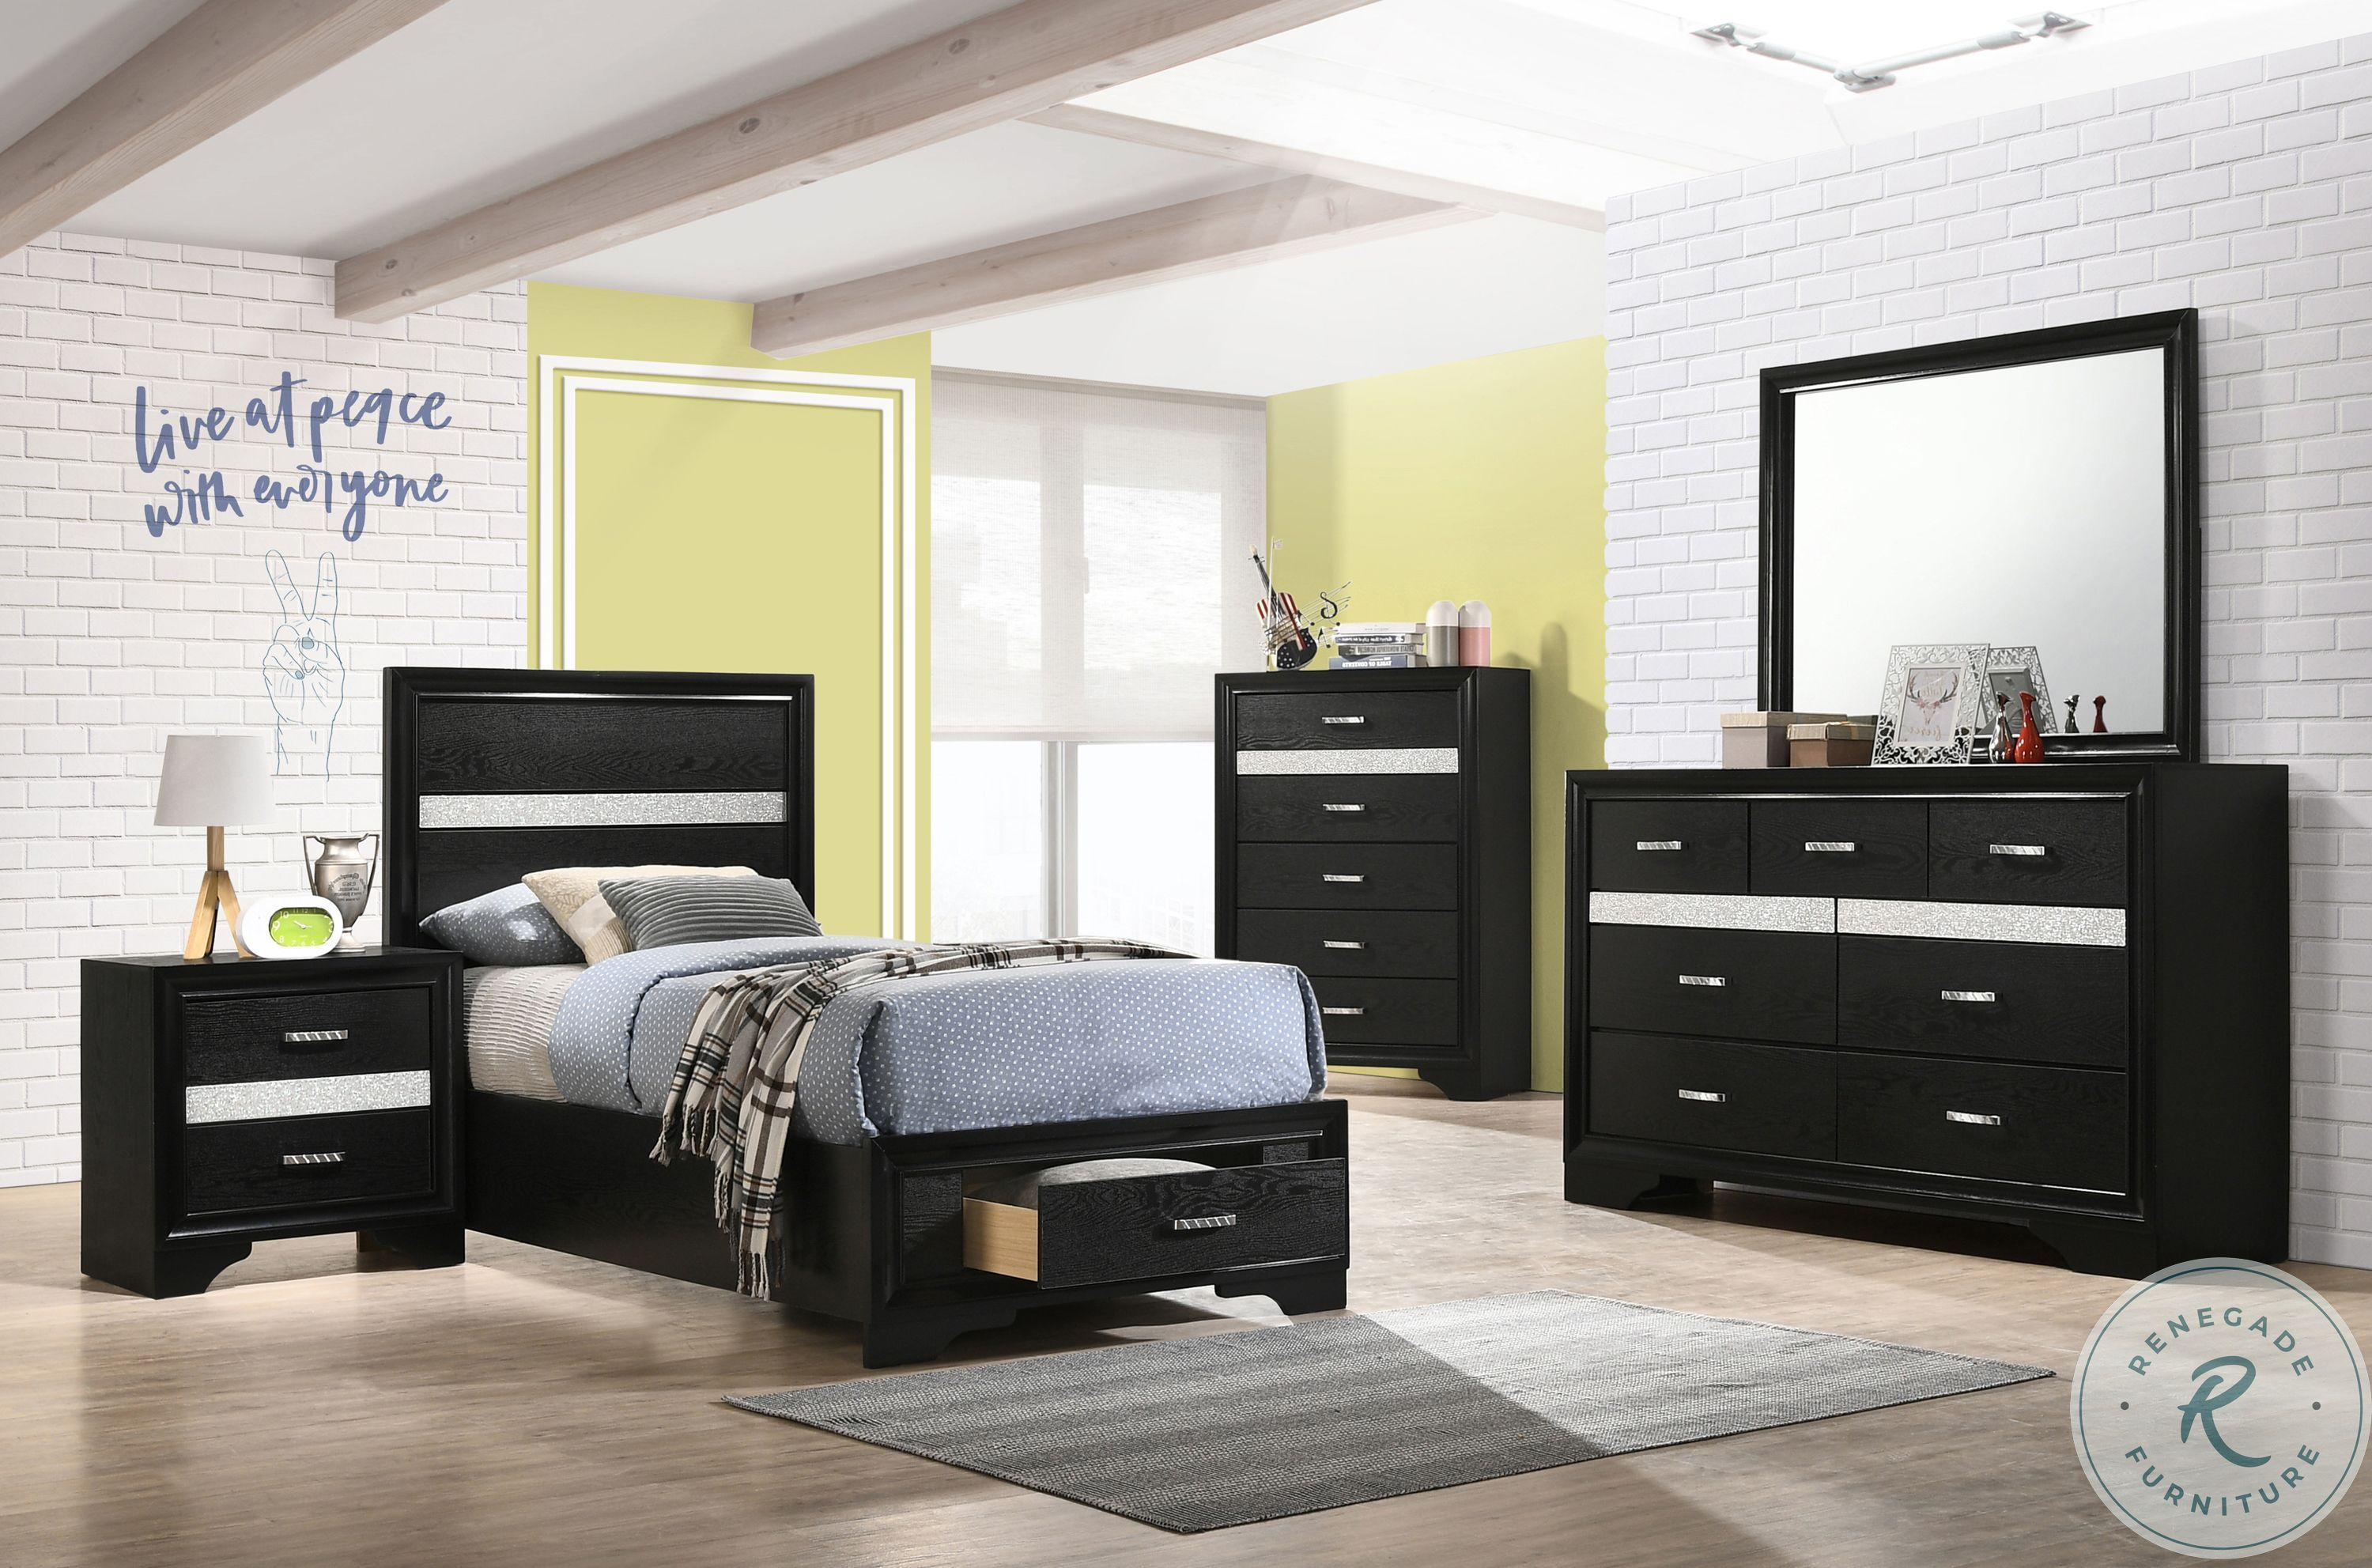 Image result for queen size